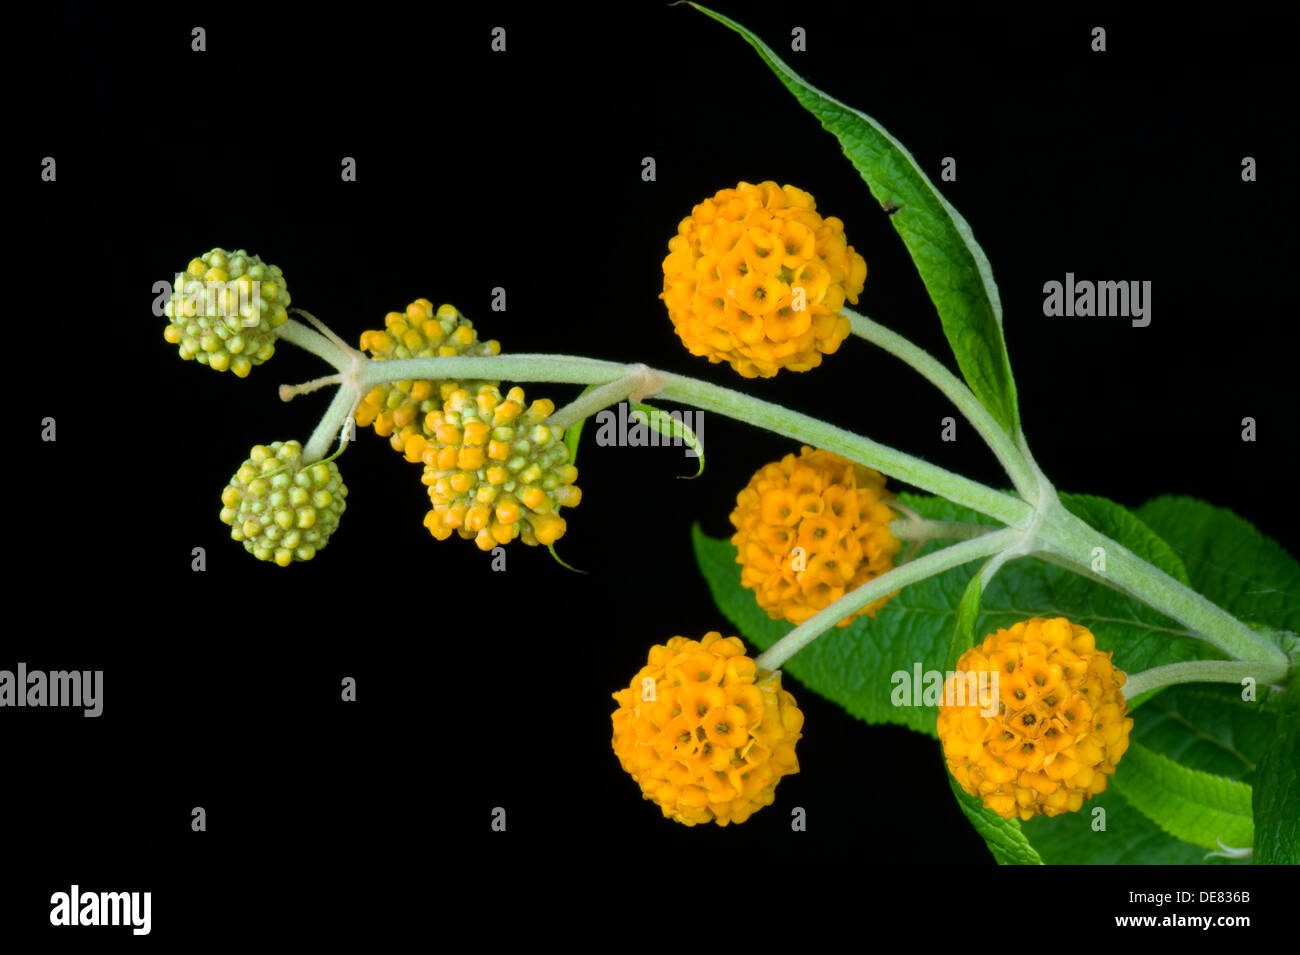 orange ball buddleja, Buddleja globosa, large flowering shrub - Stock Image